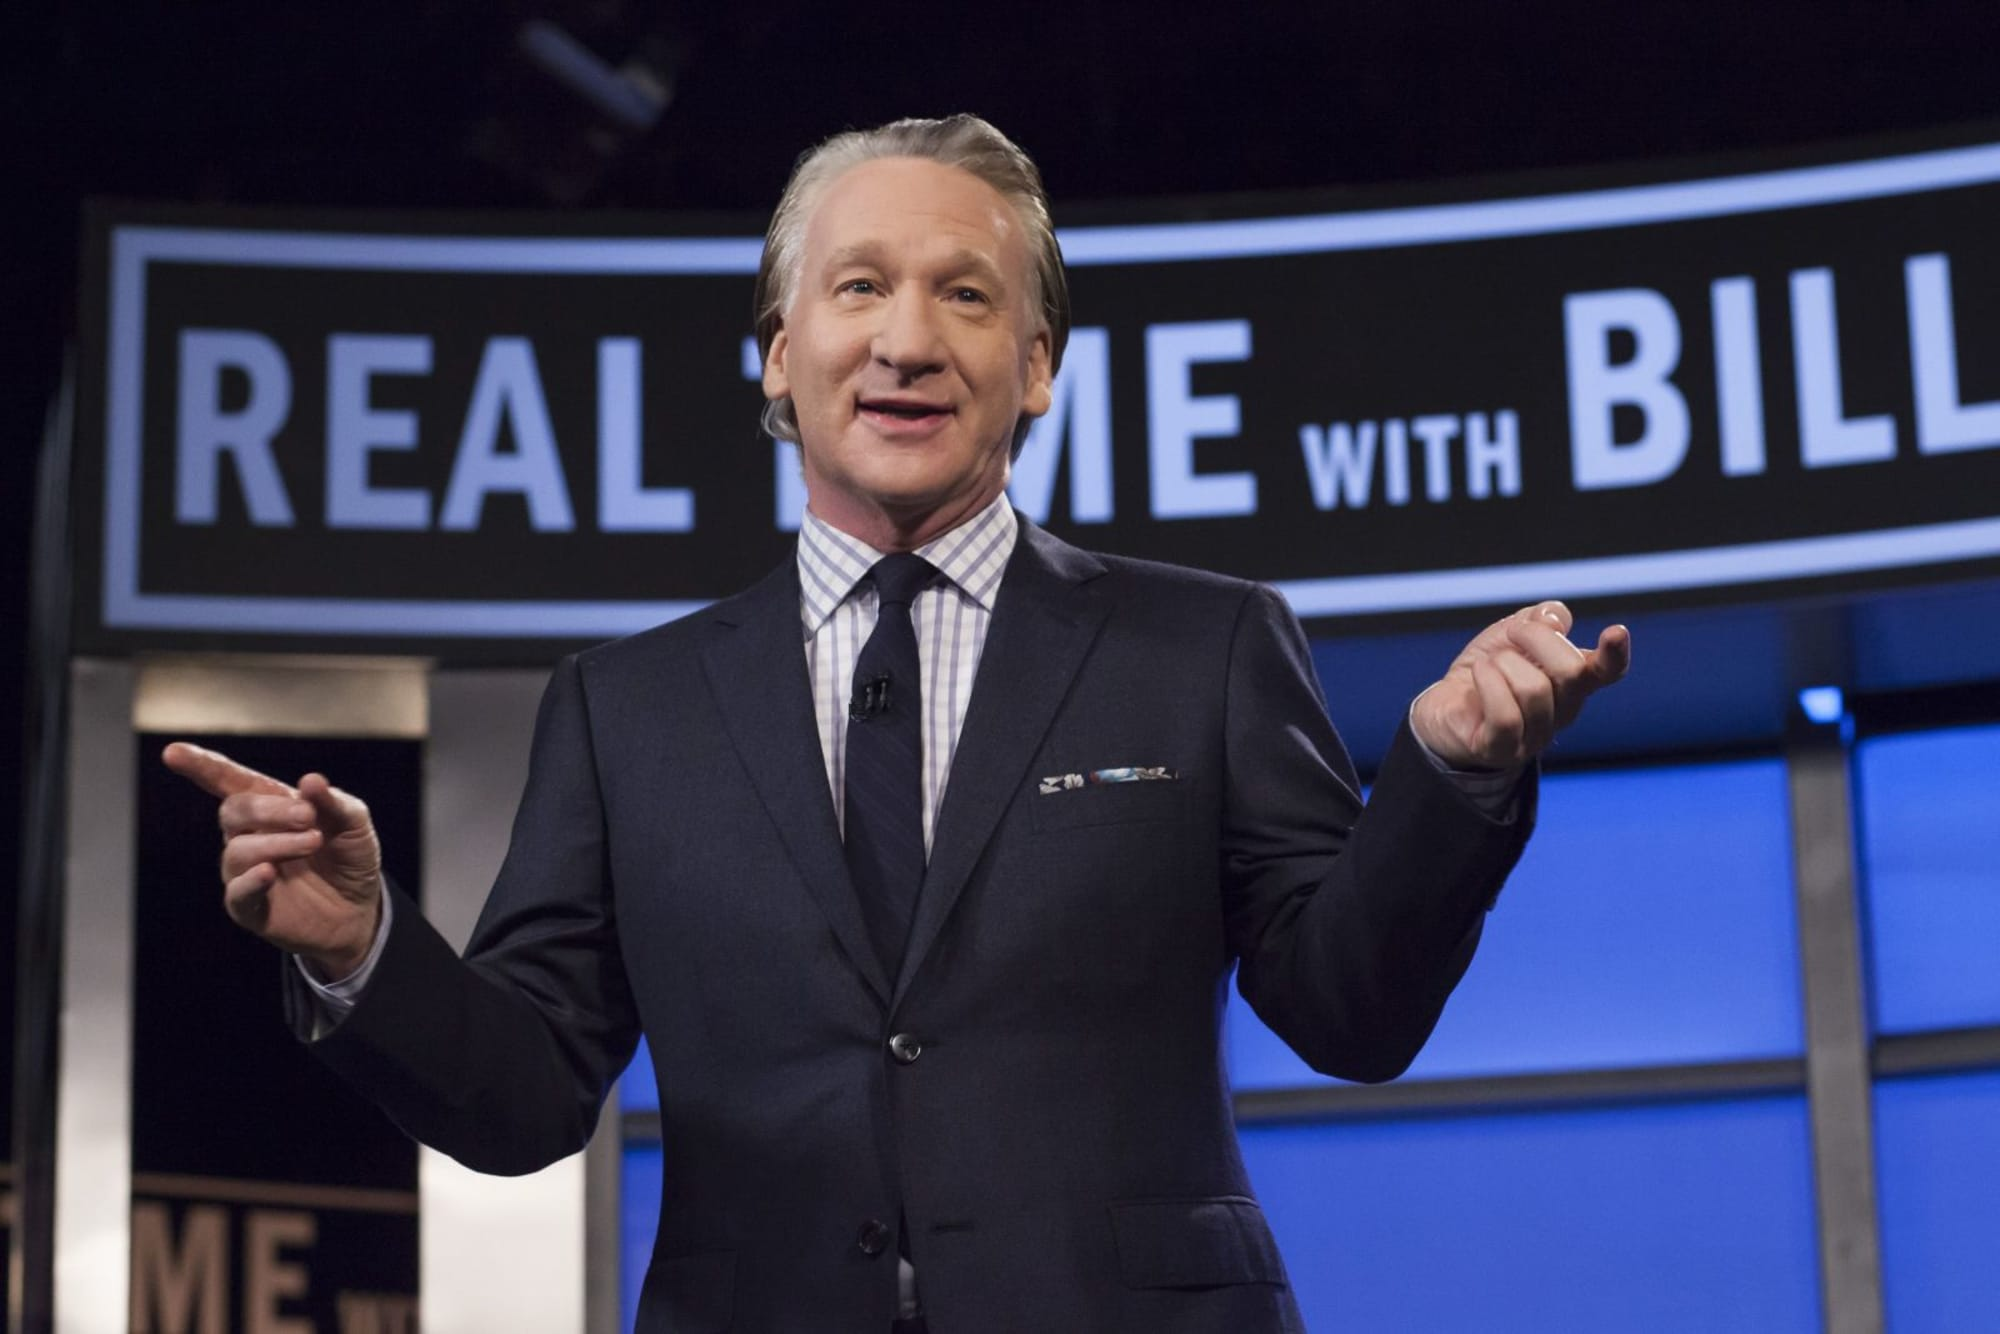 Is Real Time with Bill Maher new tonight, February 26?